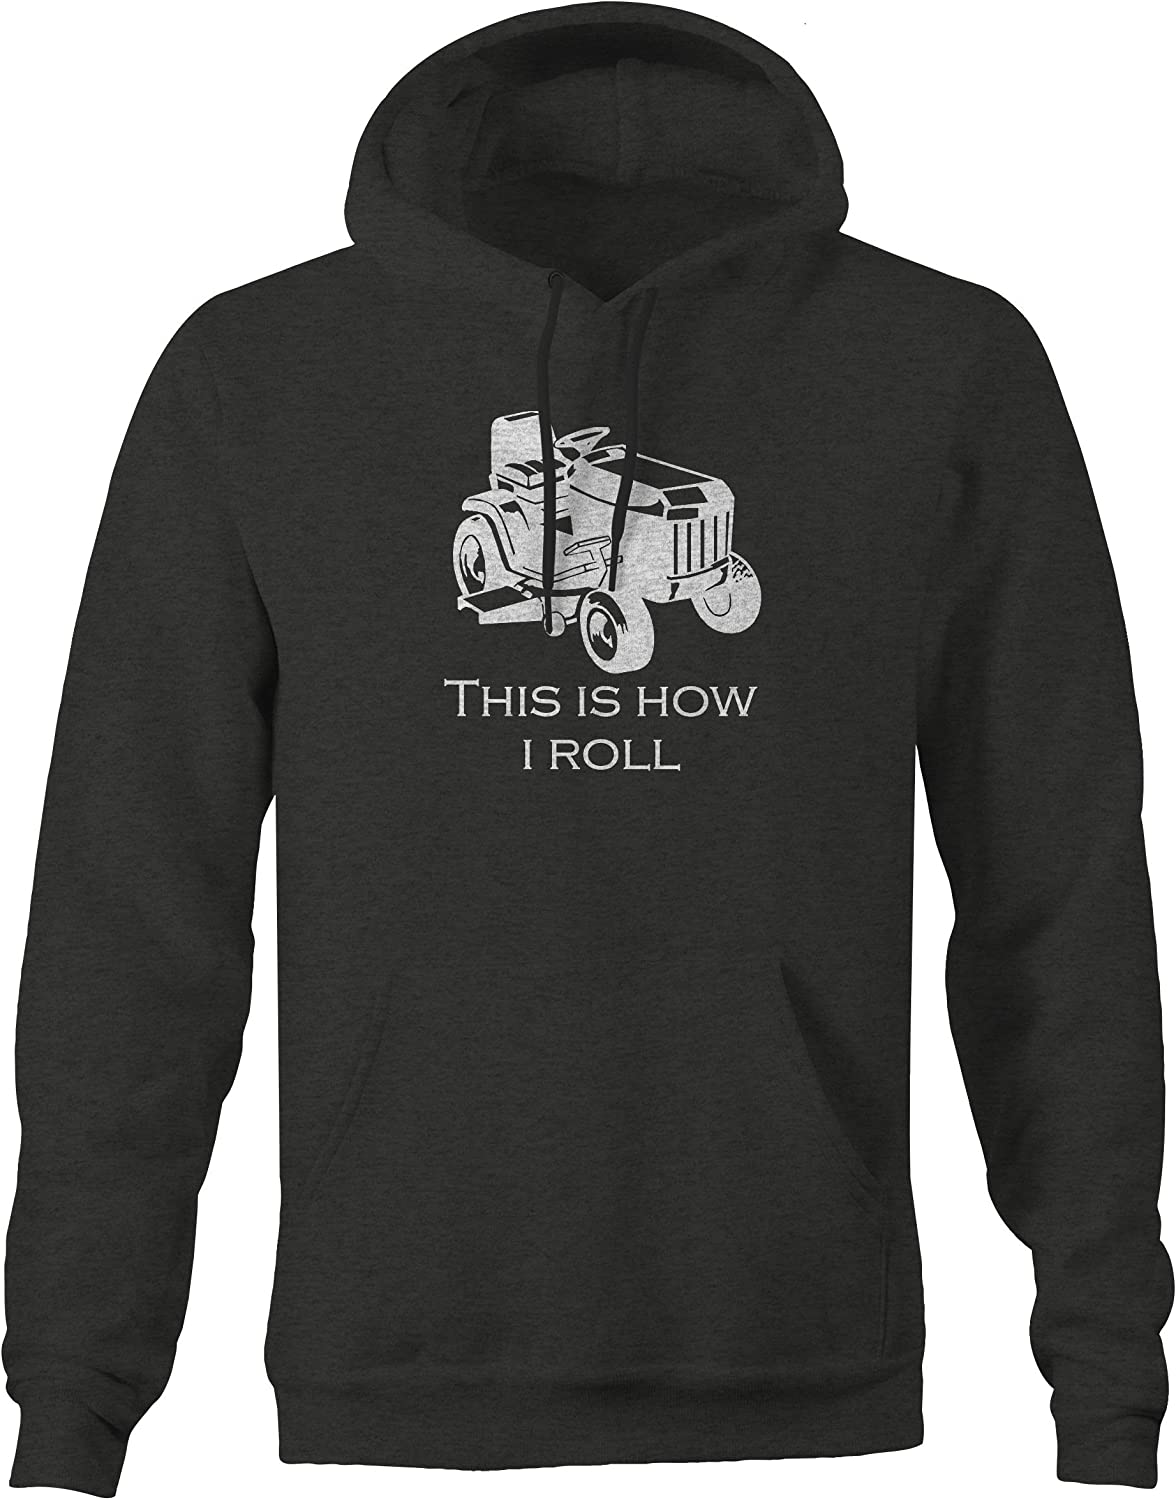 One Stop Gear This is How I Roll Riding Lawn Mower Grass Cutting Landscaping Sweatshirt